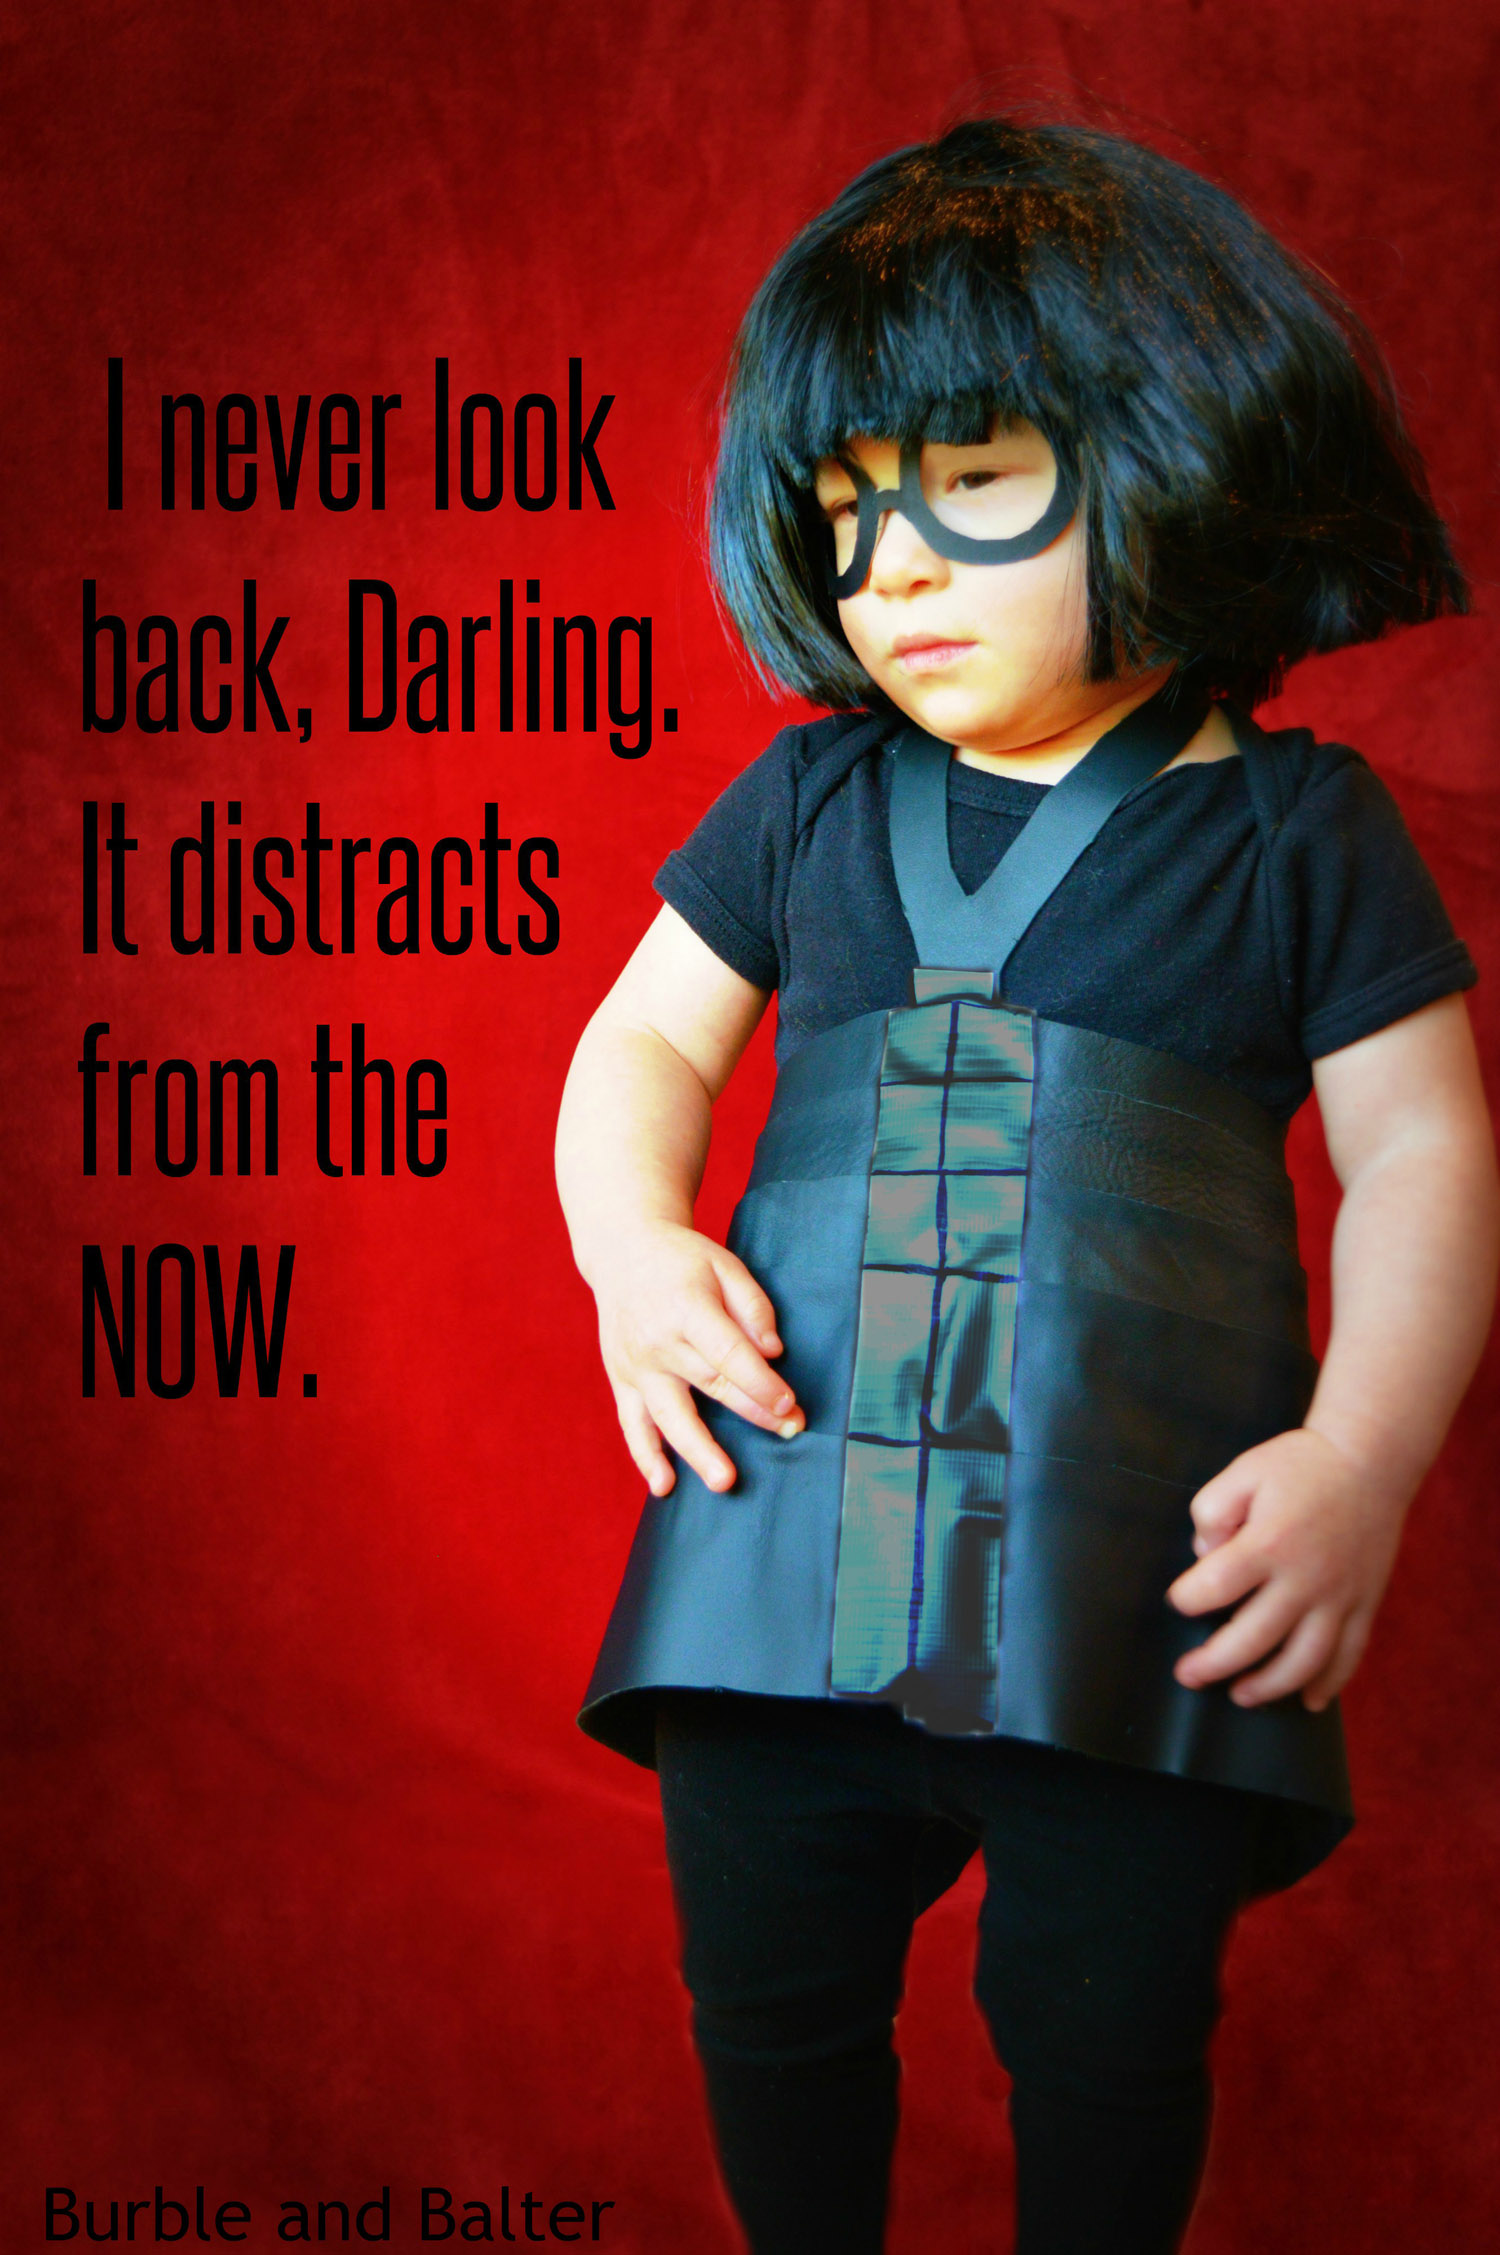 Edna-Mode-Incredibles-Photo-1-Burble-and-Balter.jpg